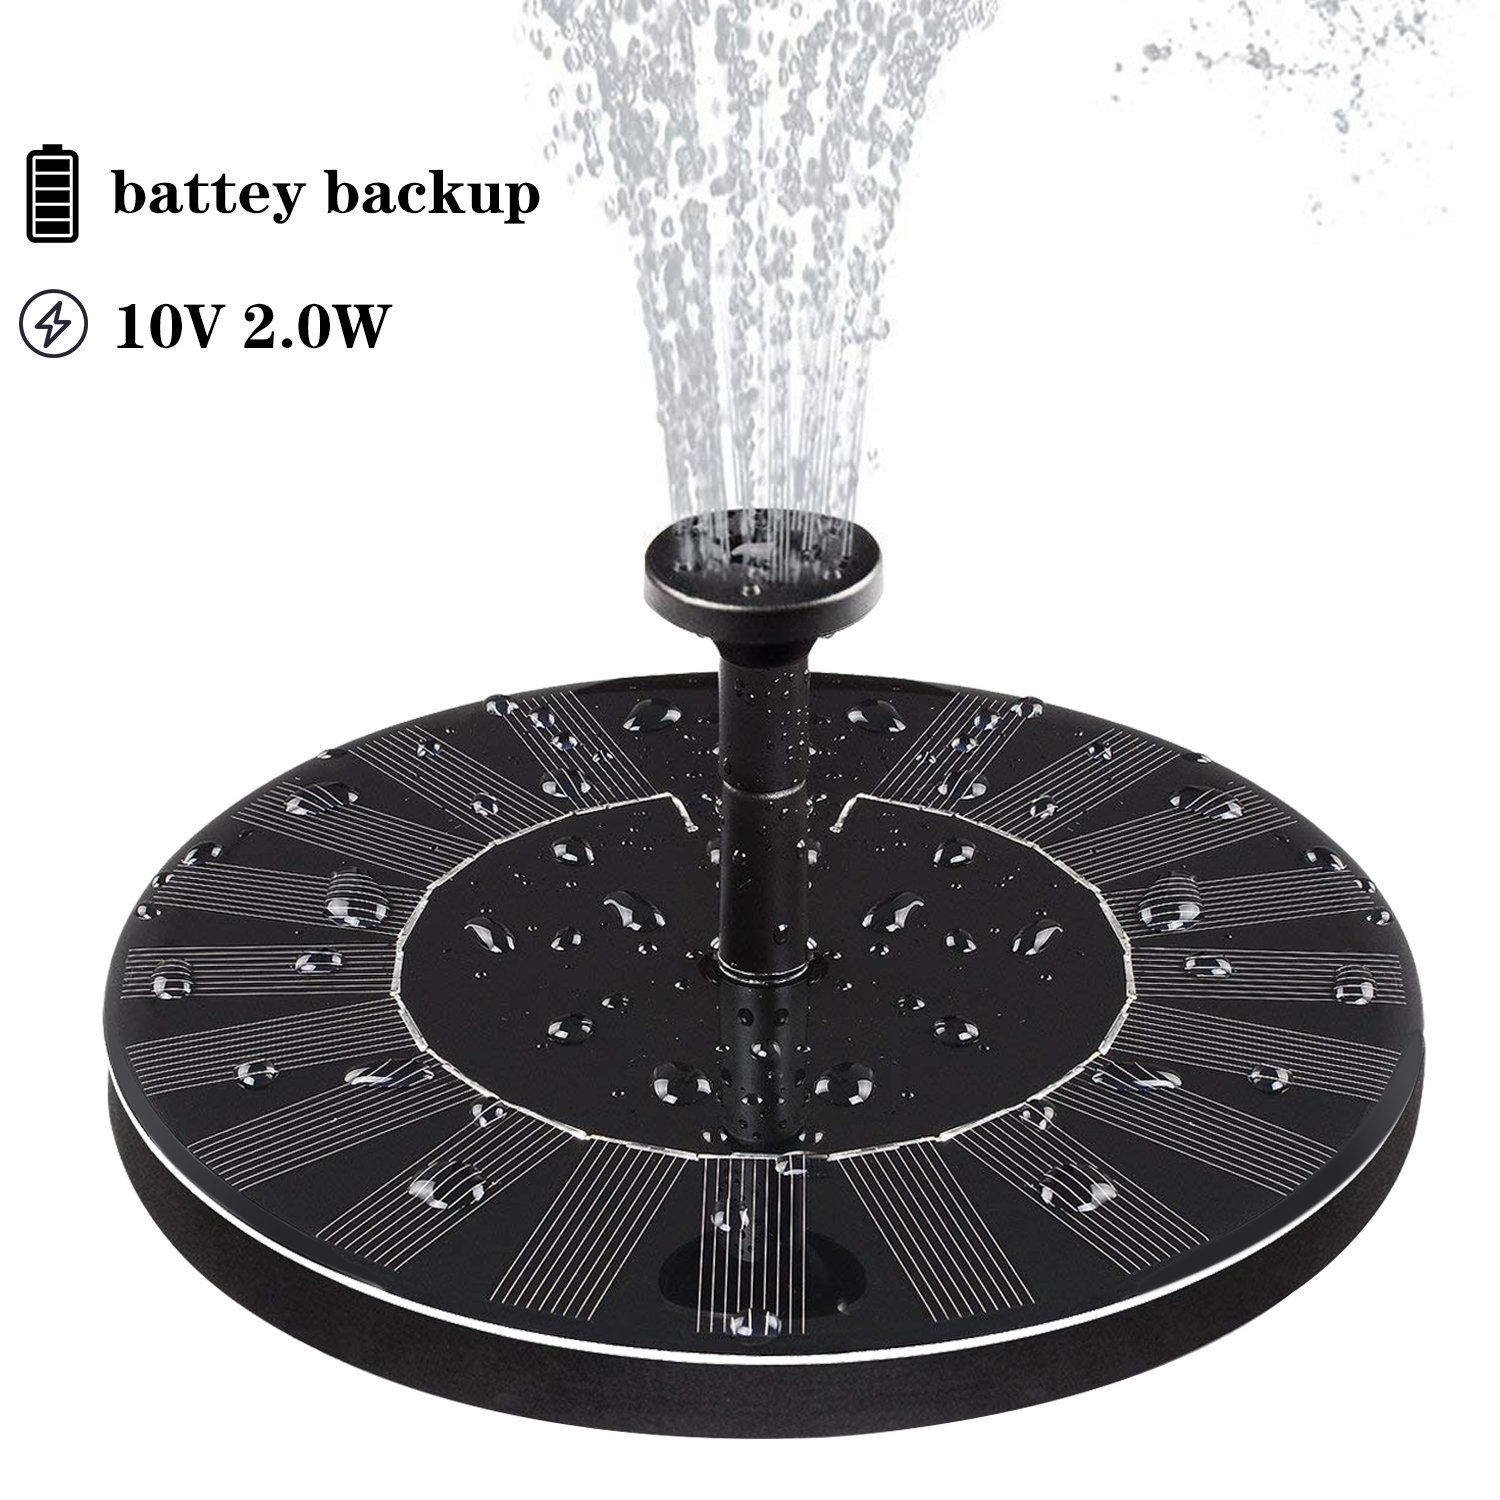 Solar Fountain ,Solar Fountain Pump for Bird Bath with Battery Backup, 10V 2W, Latest Solar Panel Kit Water Pump ,Water Fountain Pump with 4 Different Spray Pattern Heads for Pond, Pool, Garden, Fish by AMYER